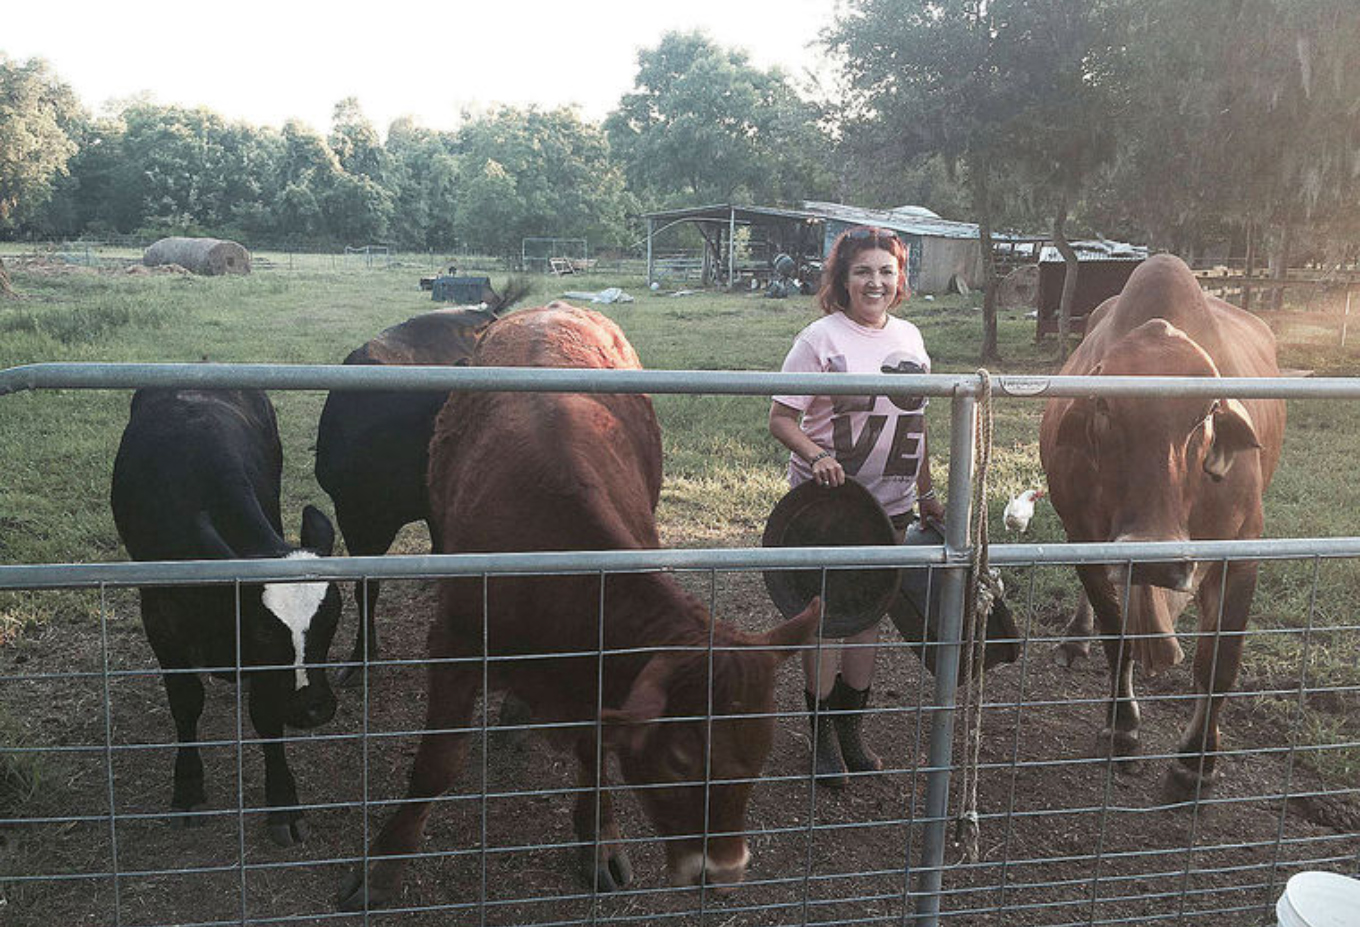 Renee with Cows